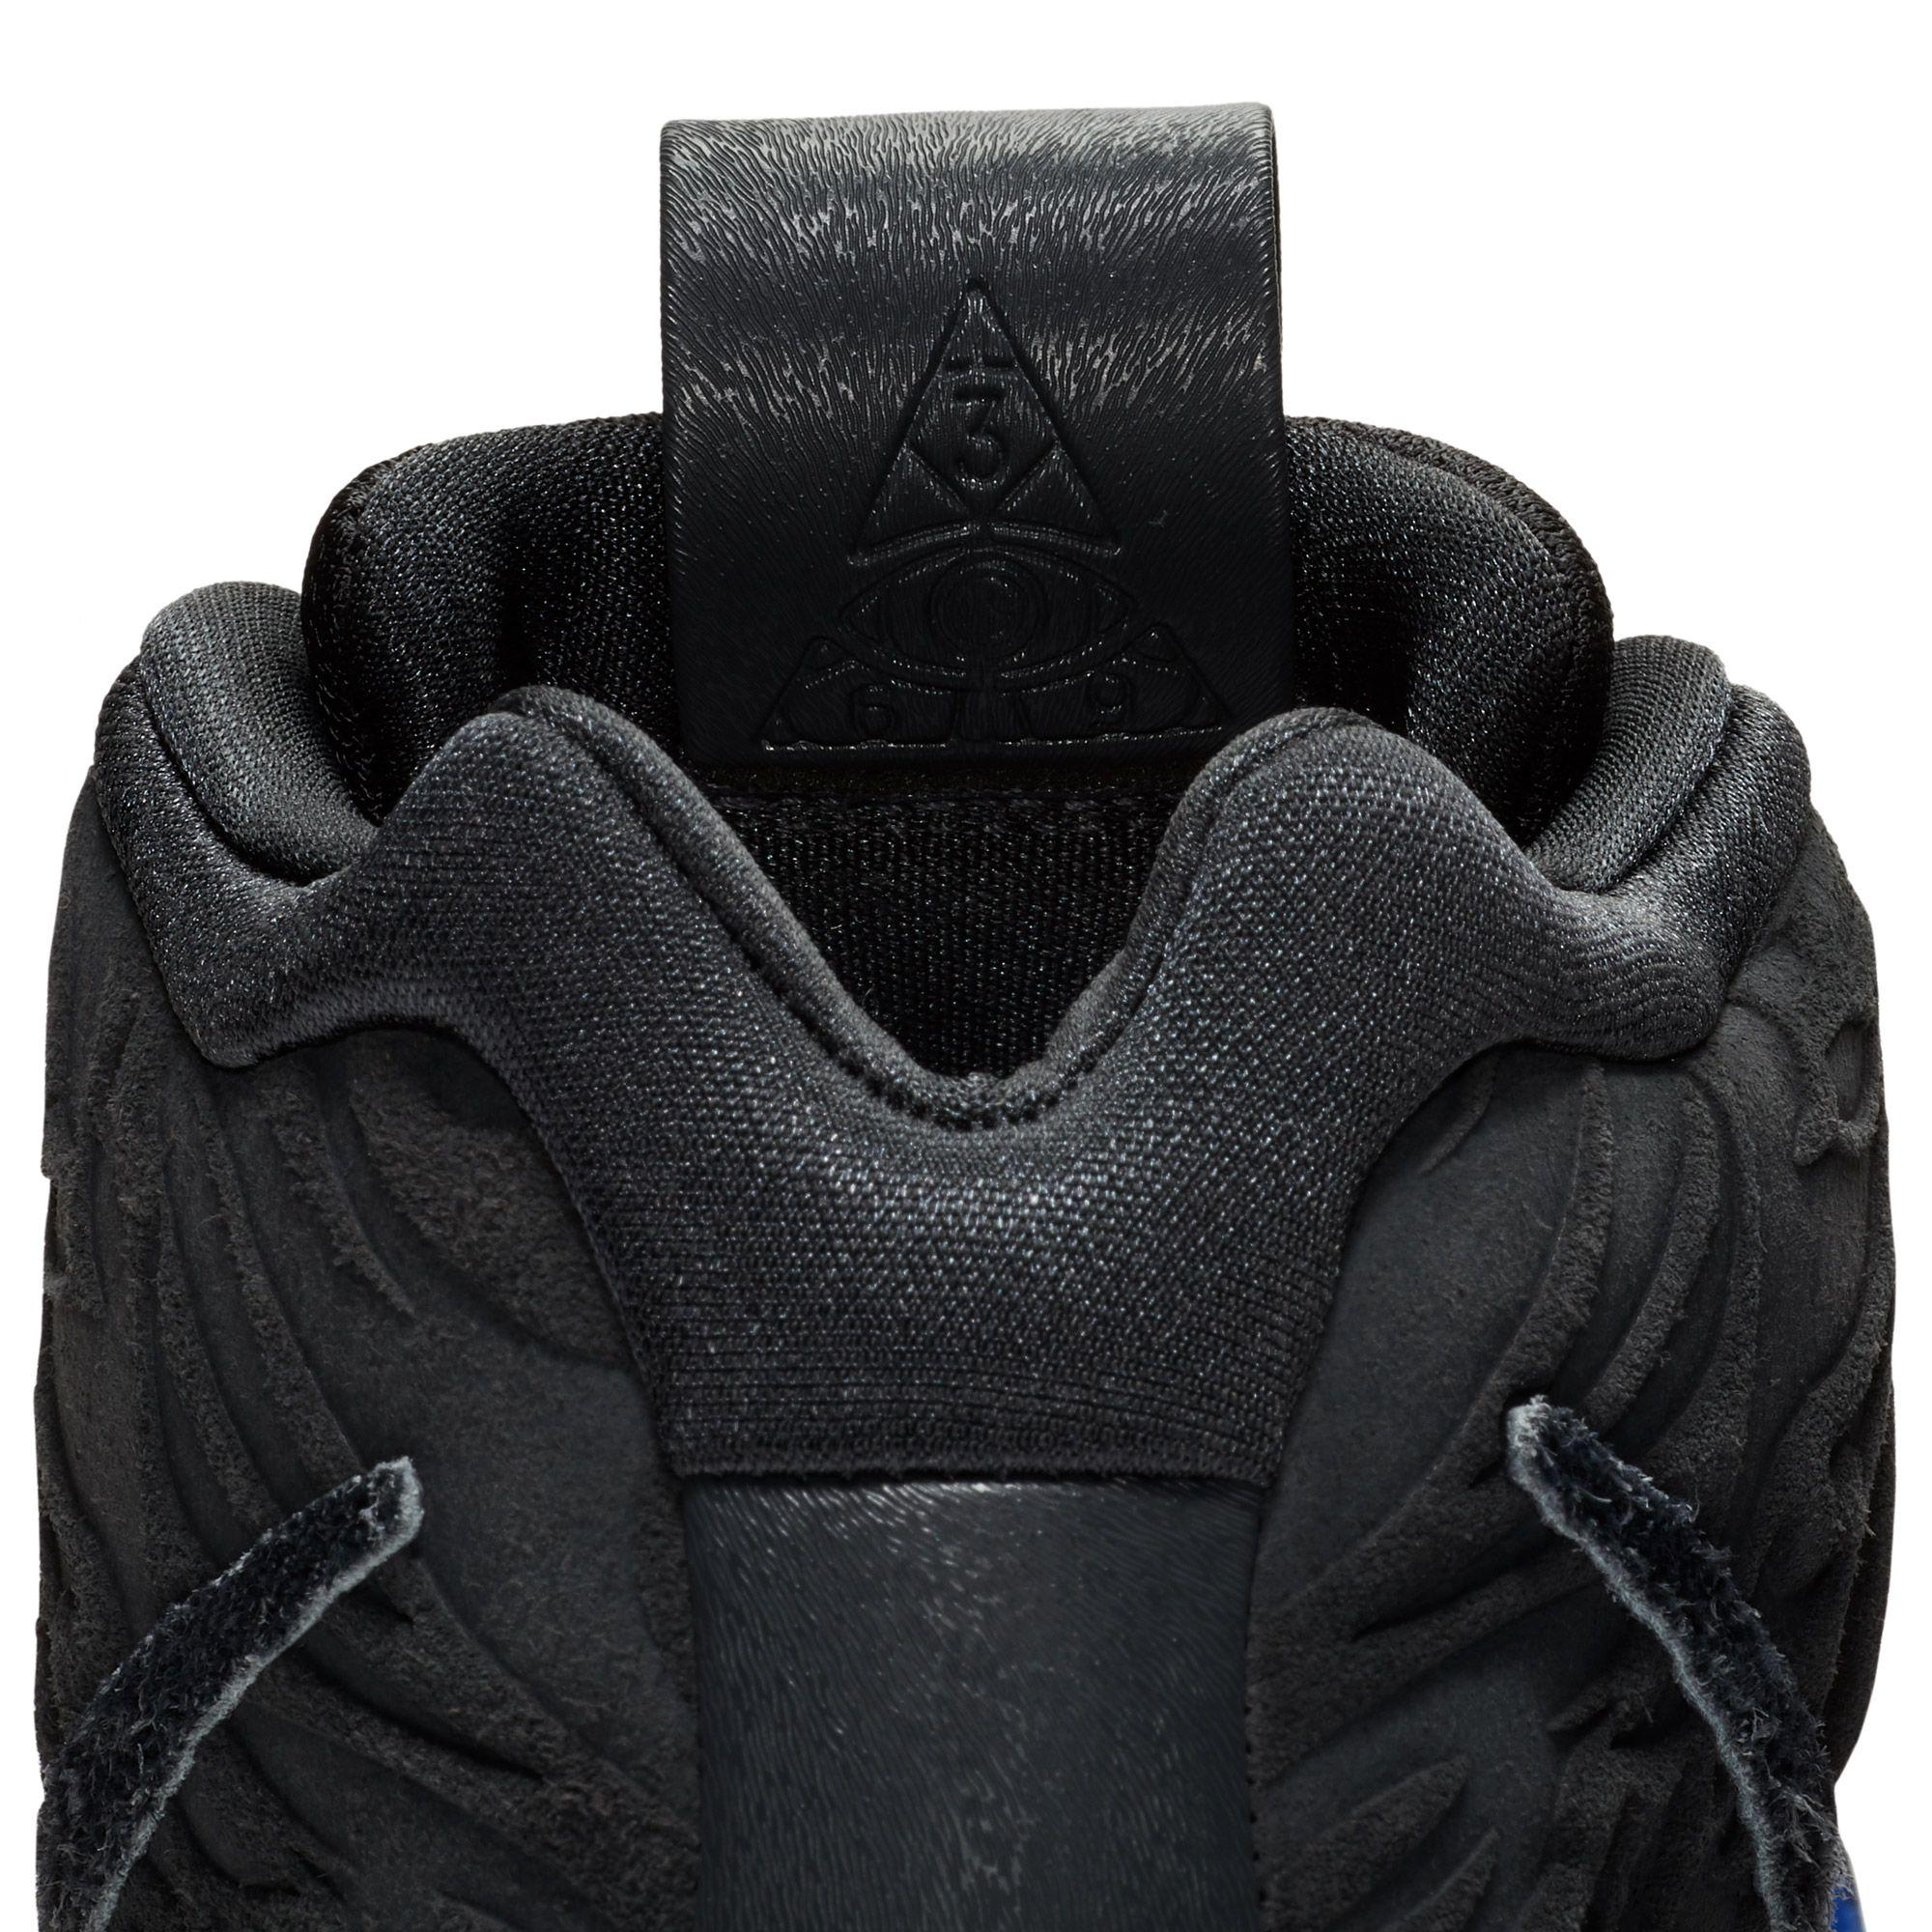 823a29157247 Lyst - Nike Kyrie 4 Basketball Shoes in Black for Men